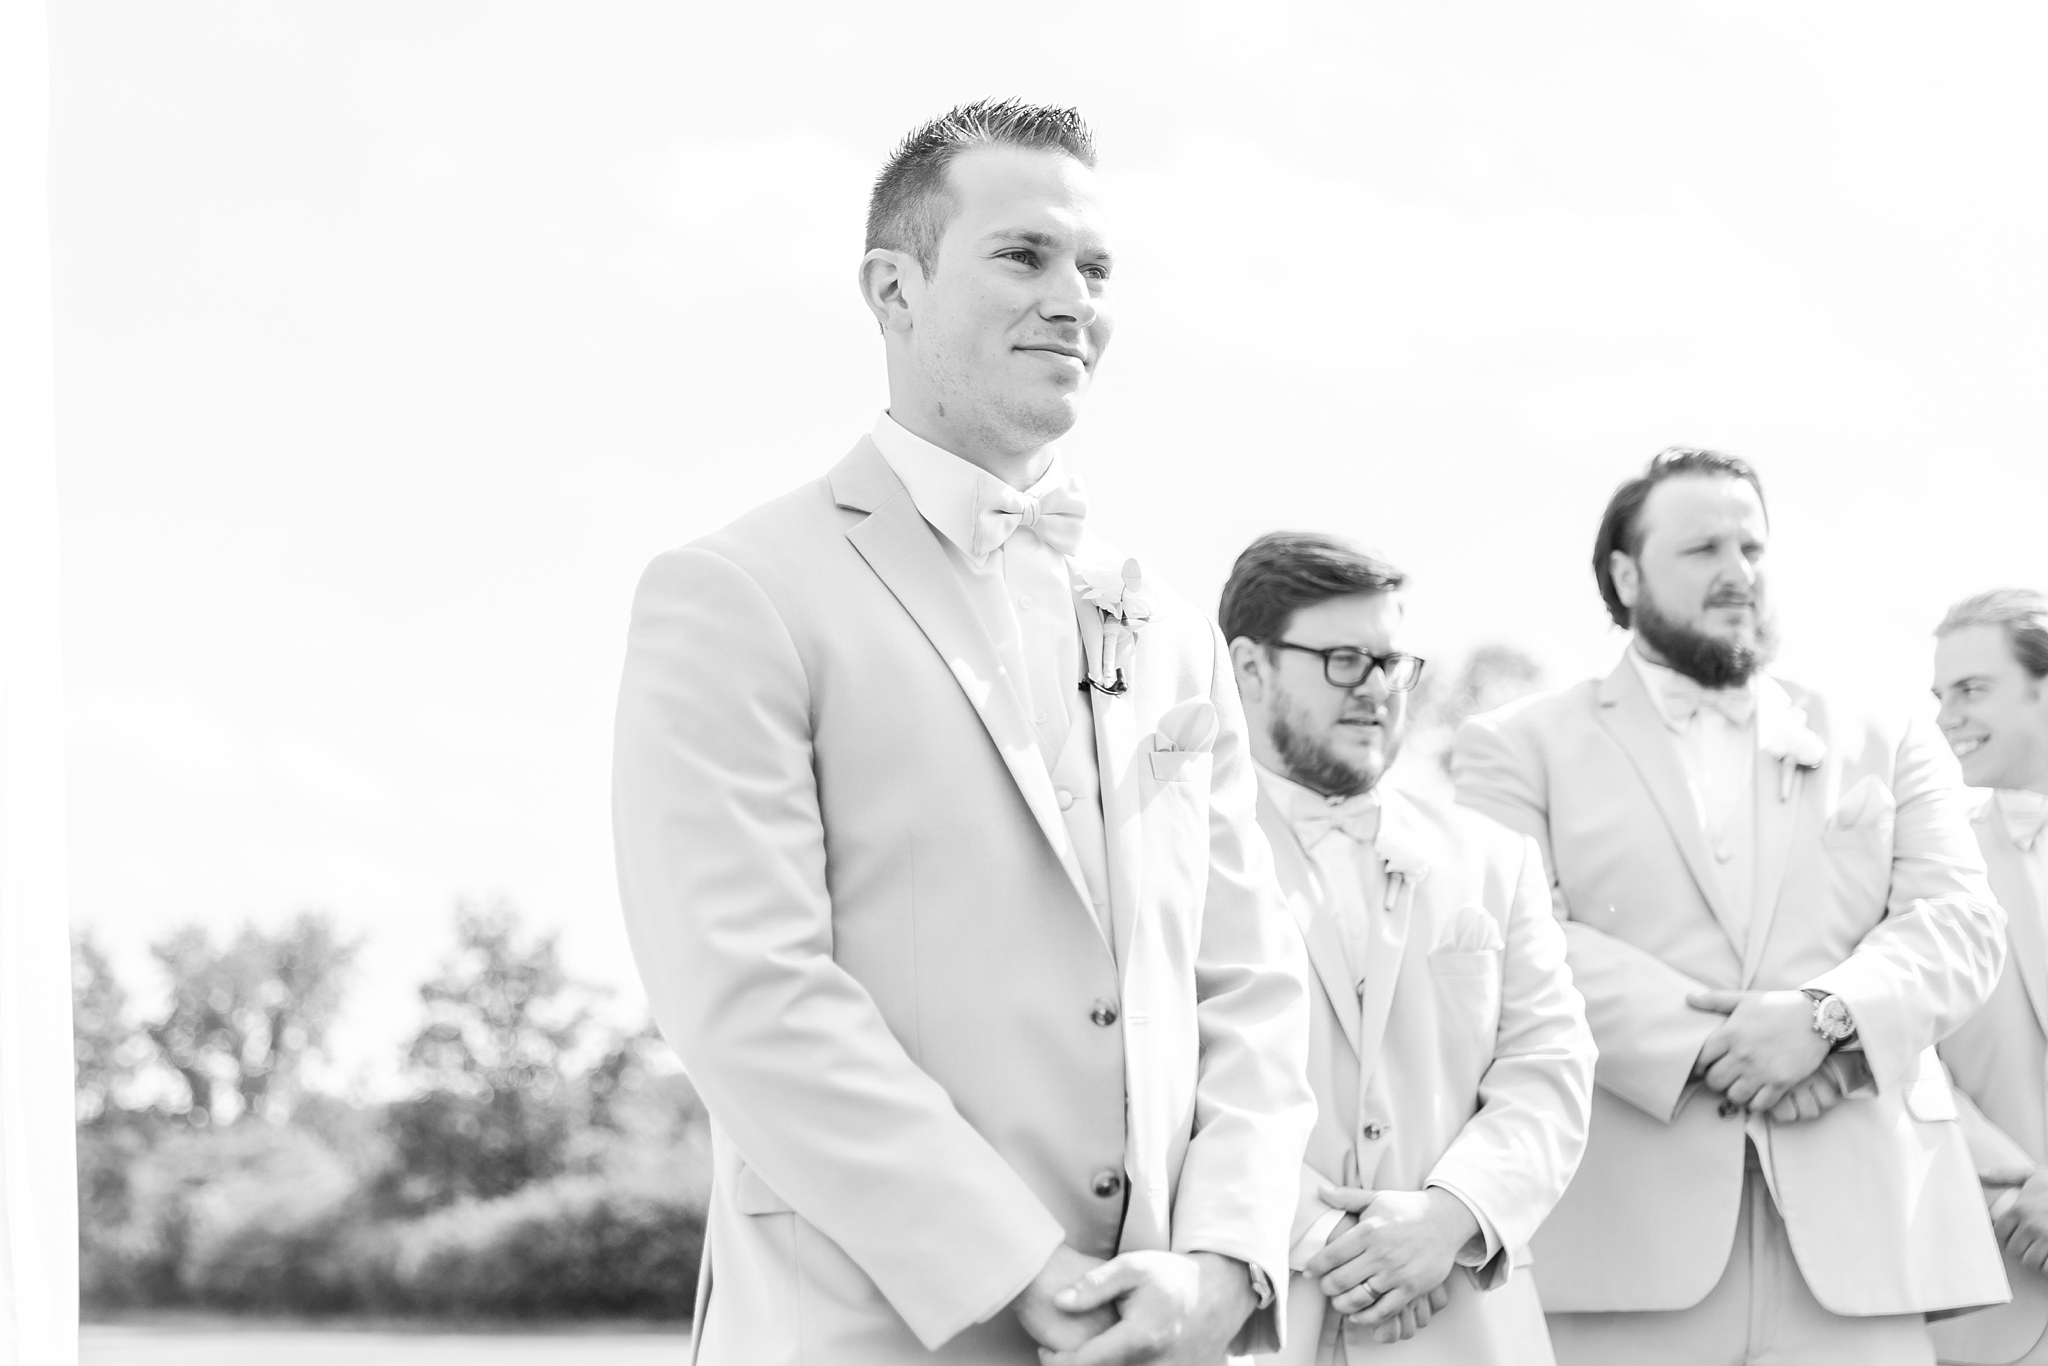 candid-timeless-wedding-photos-at-the-captains-club-in-grand-blanc-michigan-by-courtney-carolyn-photography_0032.jpg